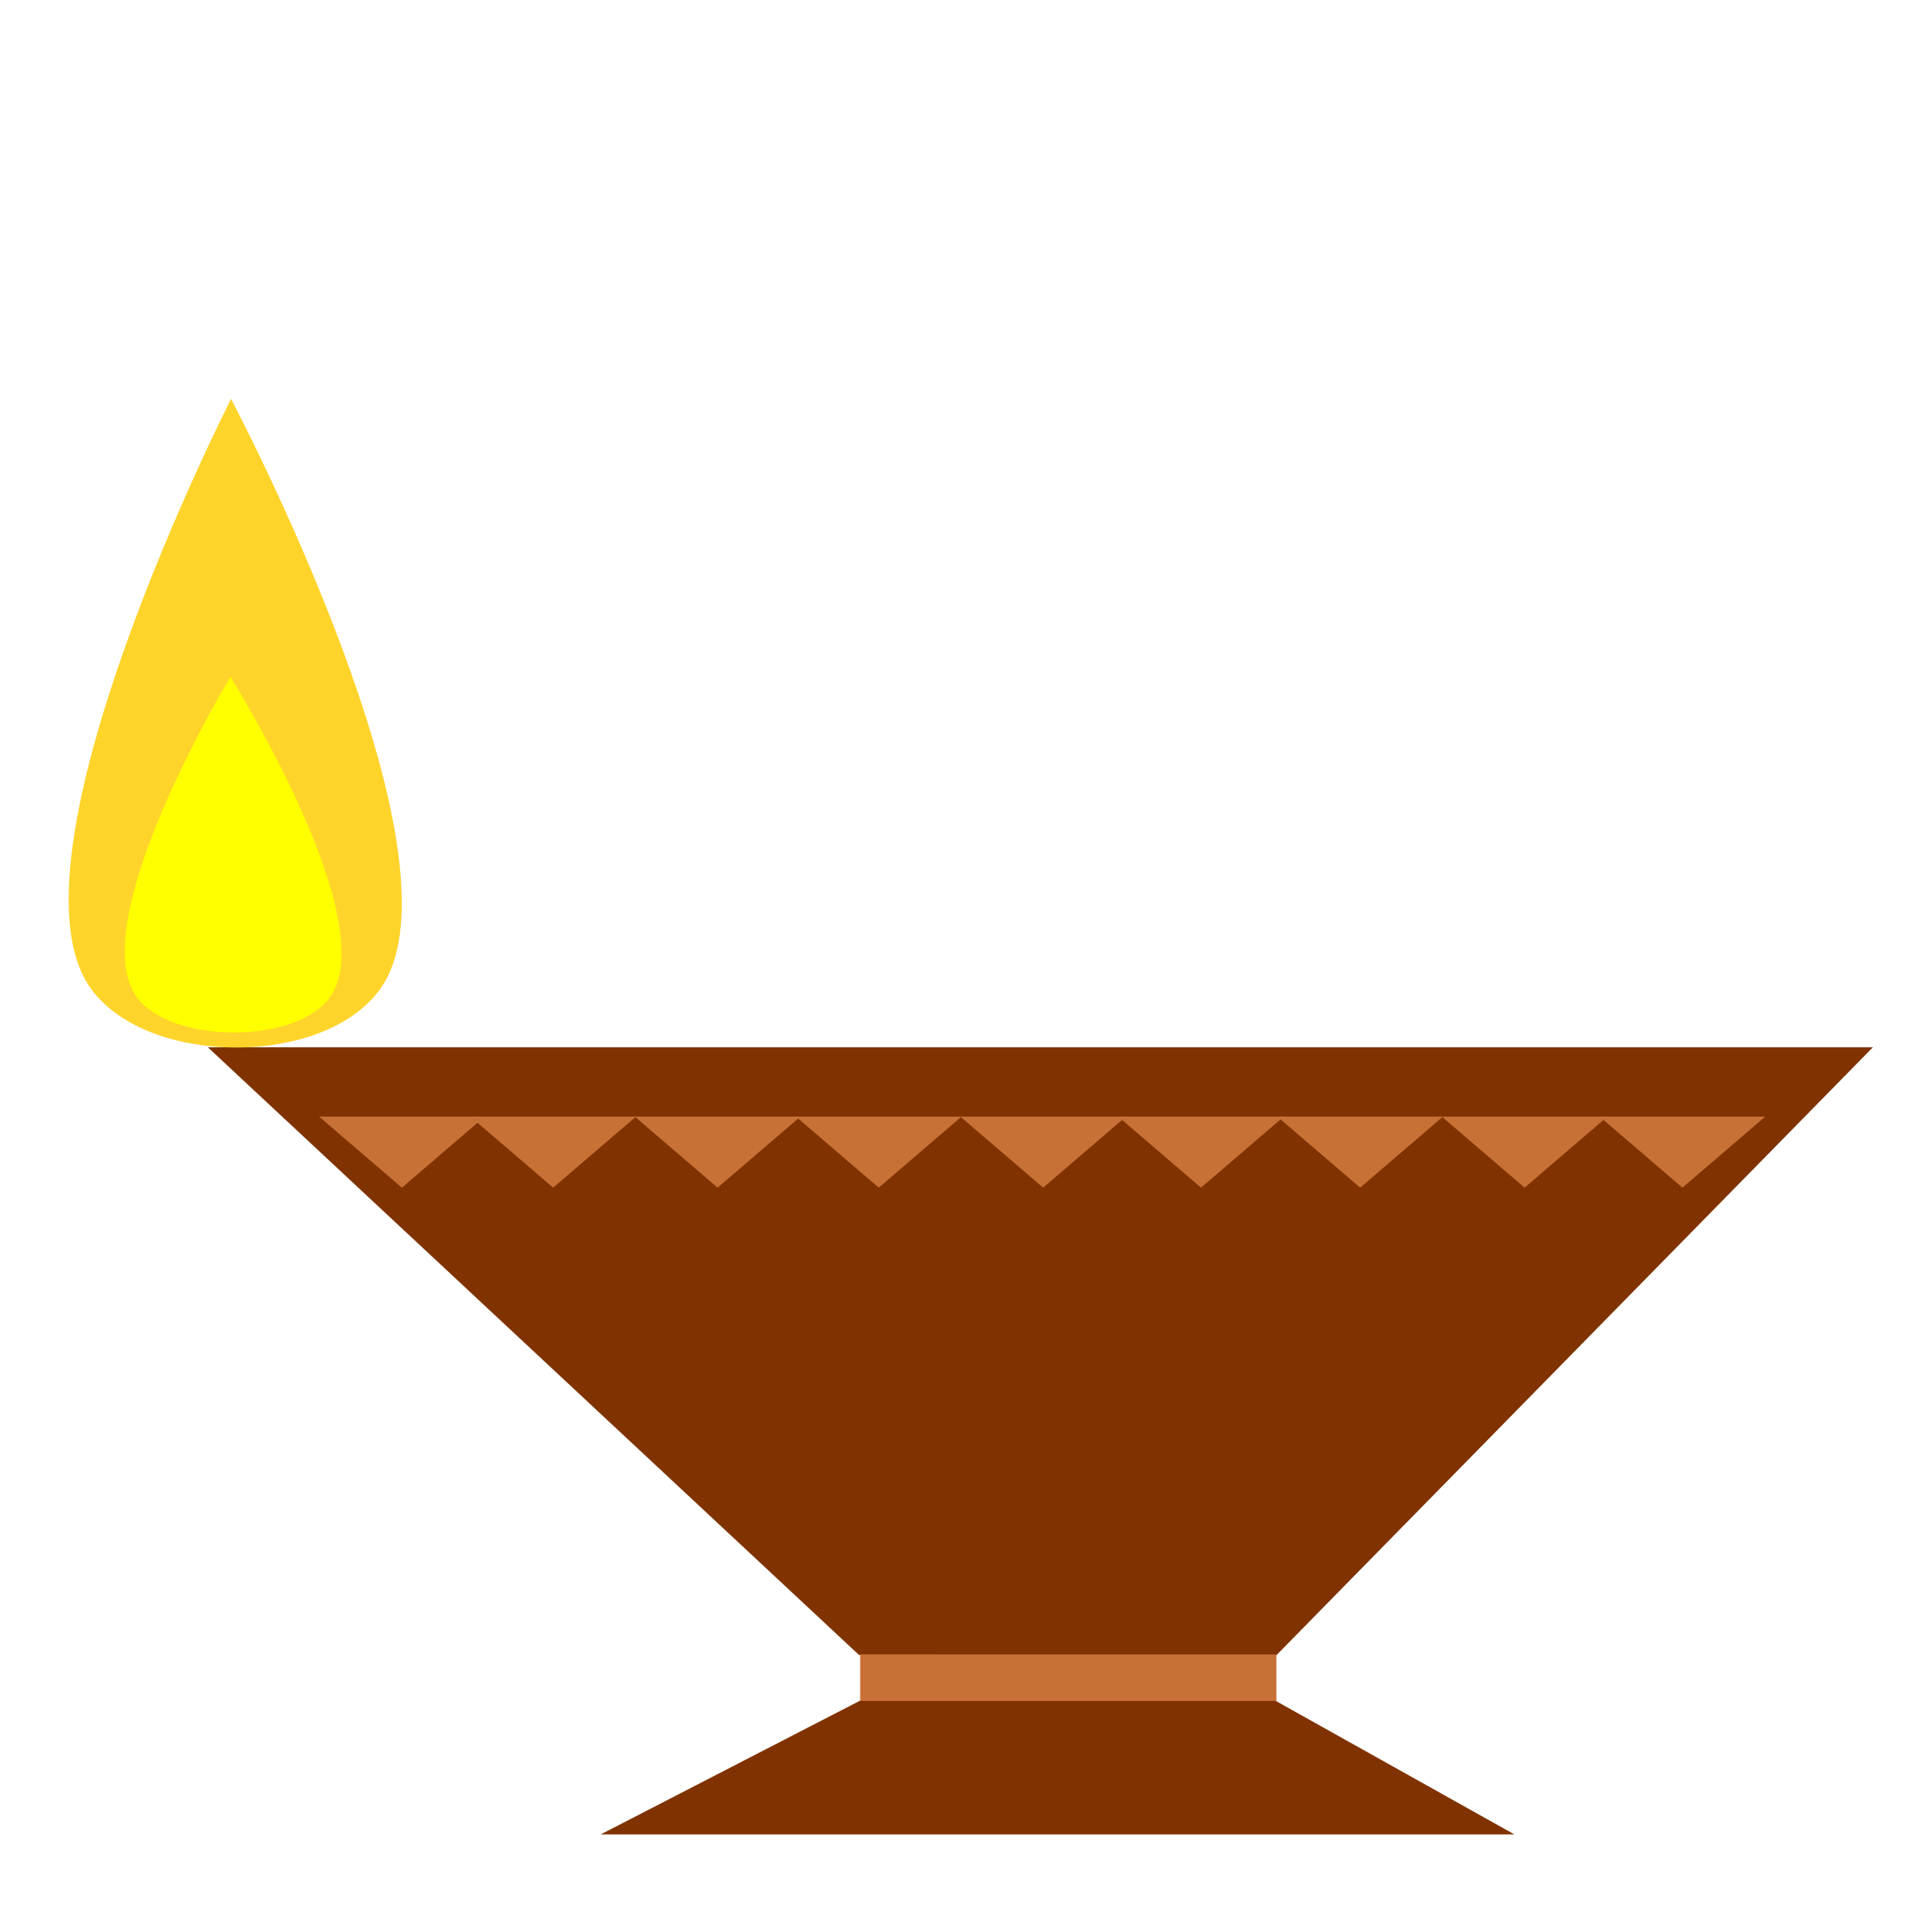 Diwali Crackers Png Clipart Lamp Diya For The Festival Of Deepavali